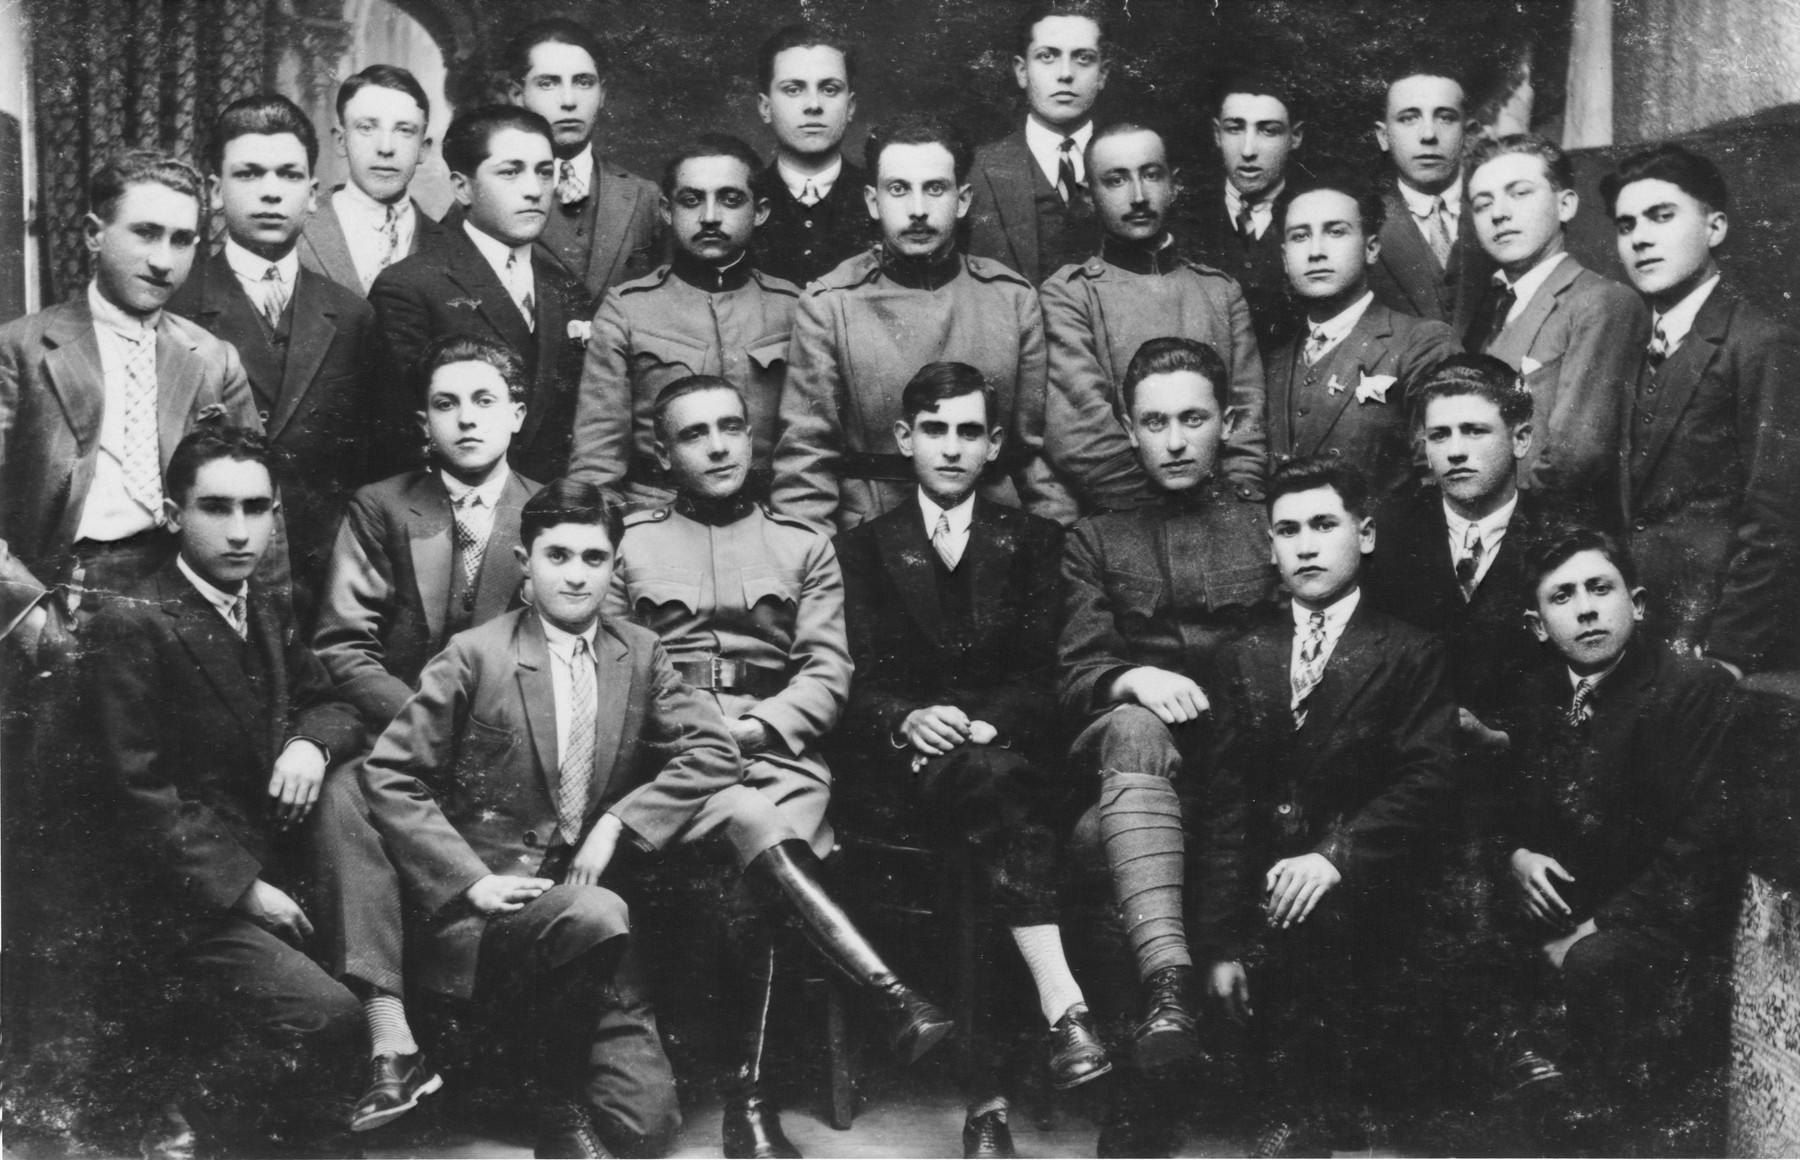 Group portrait of young Macedonian Jewish men, many of whom are wearing military uniform.